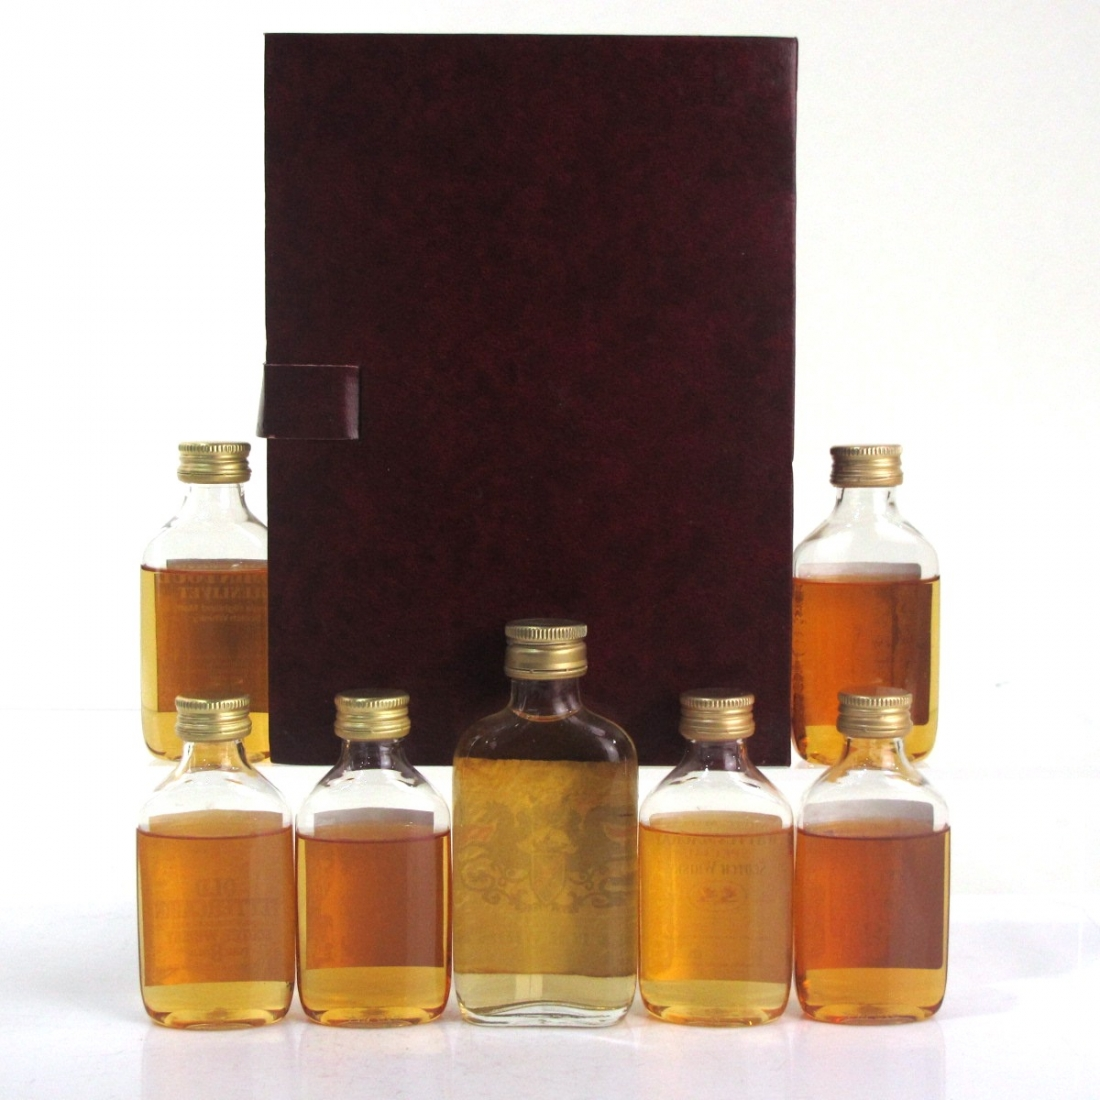 Whyte and Mackay Scotch Whisky Collection 6 x 5cl & Uisge Beatha Miniature 1970s